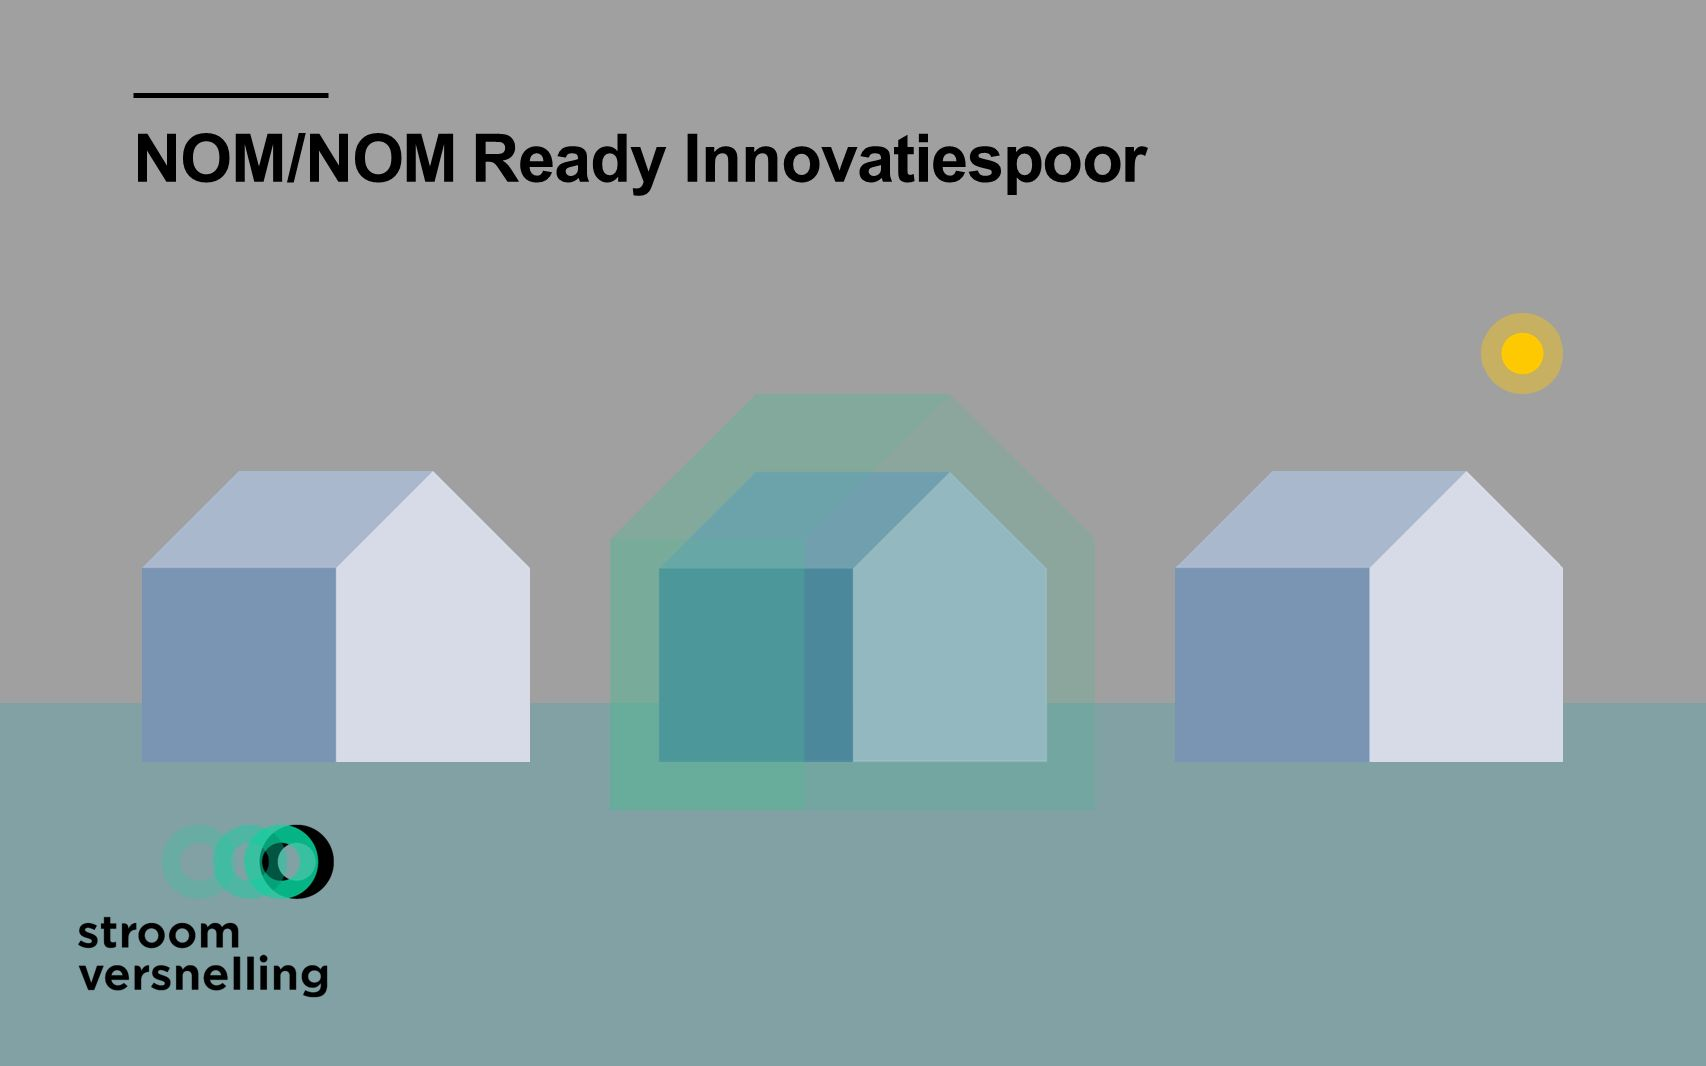 NOM/NOM Ready Innovatiespoor